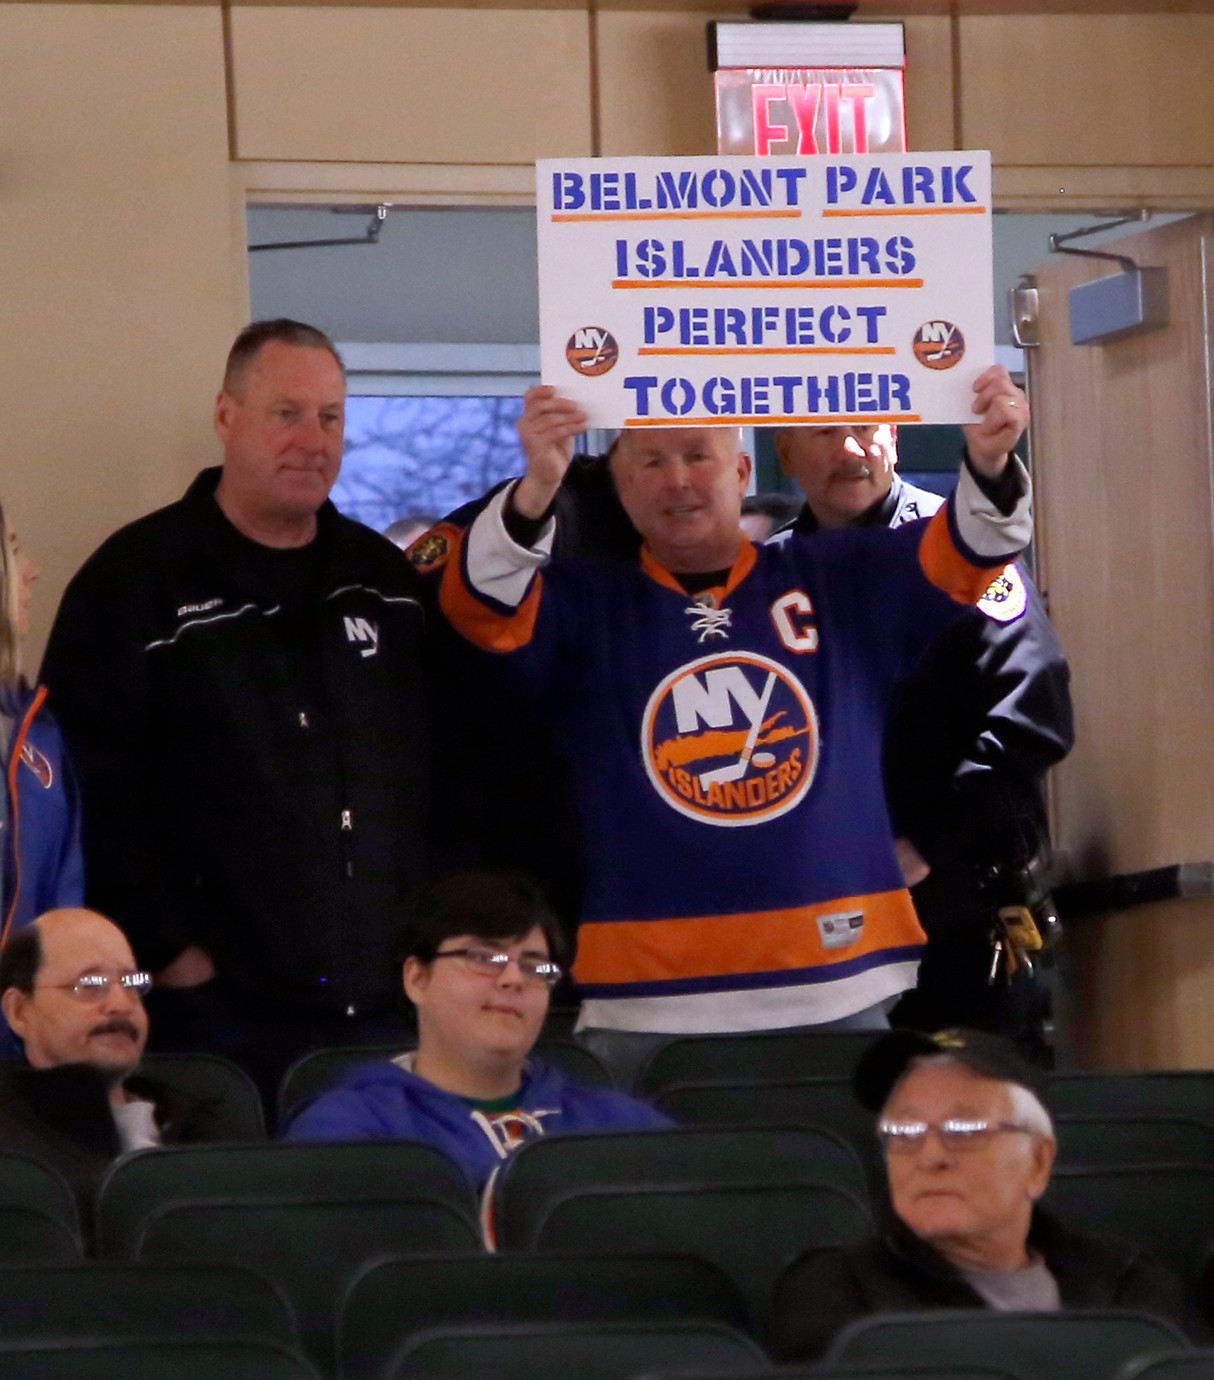 A number of attendees at Sunday's forum, at which Belmont Park plans were presented, questioned the need for a second stadium to house the New York Islanders, but others like this man clearly favored moving the Islanders to Belmont.